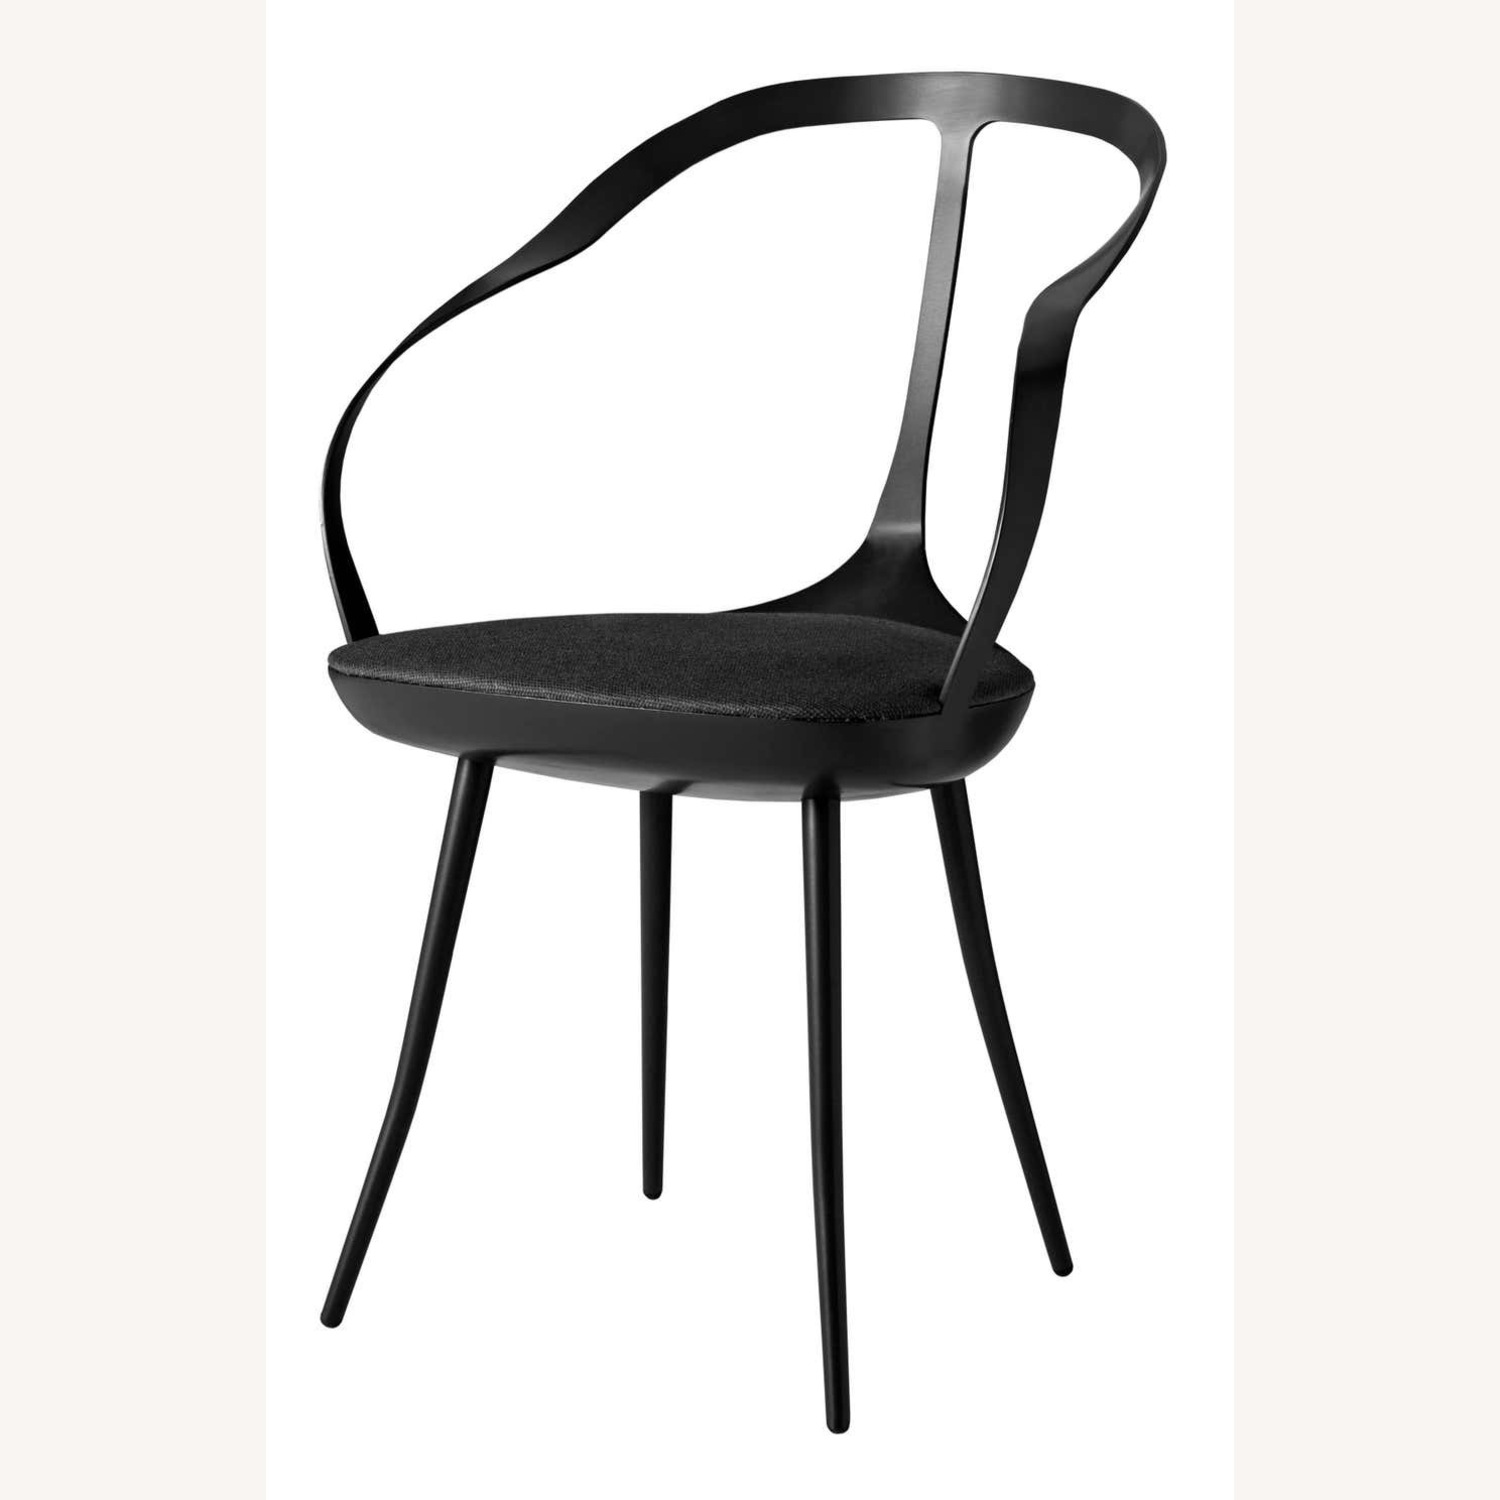 Italian design chairs by Driade - image-1